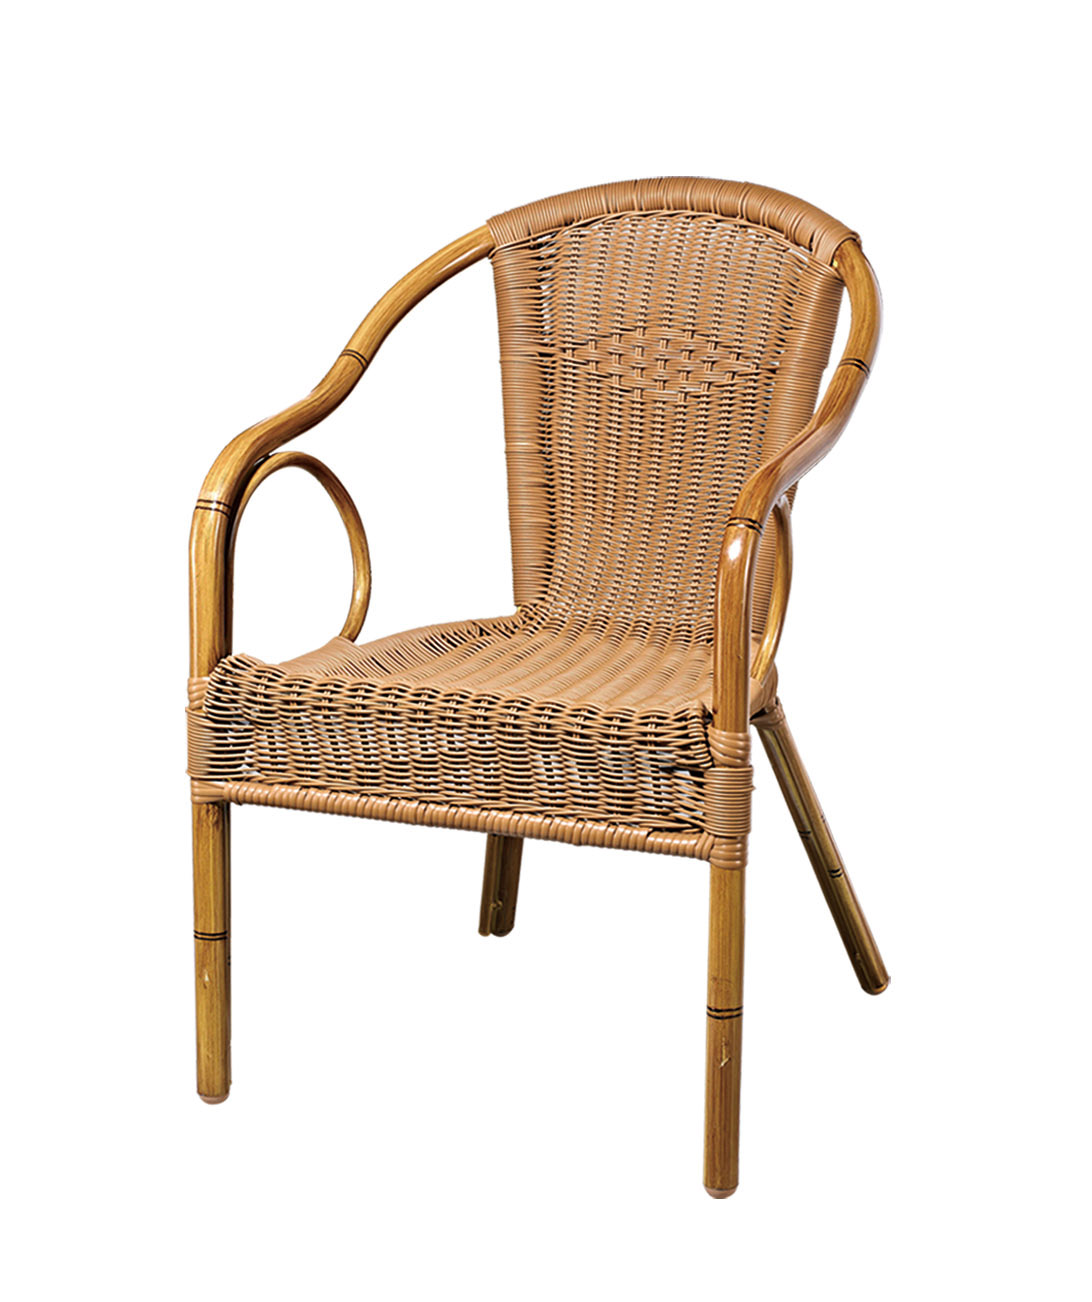 Tuwell-Best Tw3001 Aluminum Rattan Bar Chair Small Rattan Chairs-4